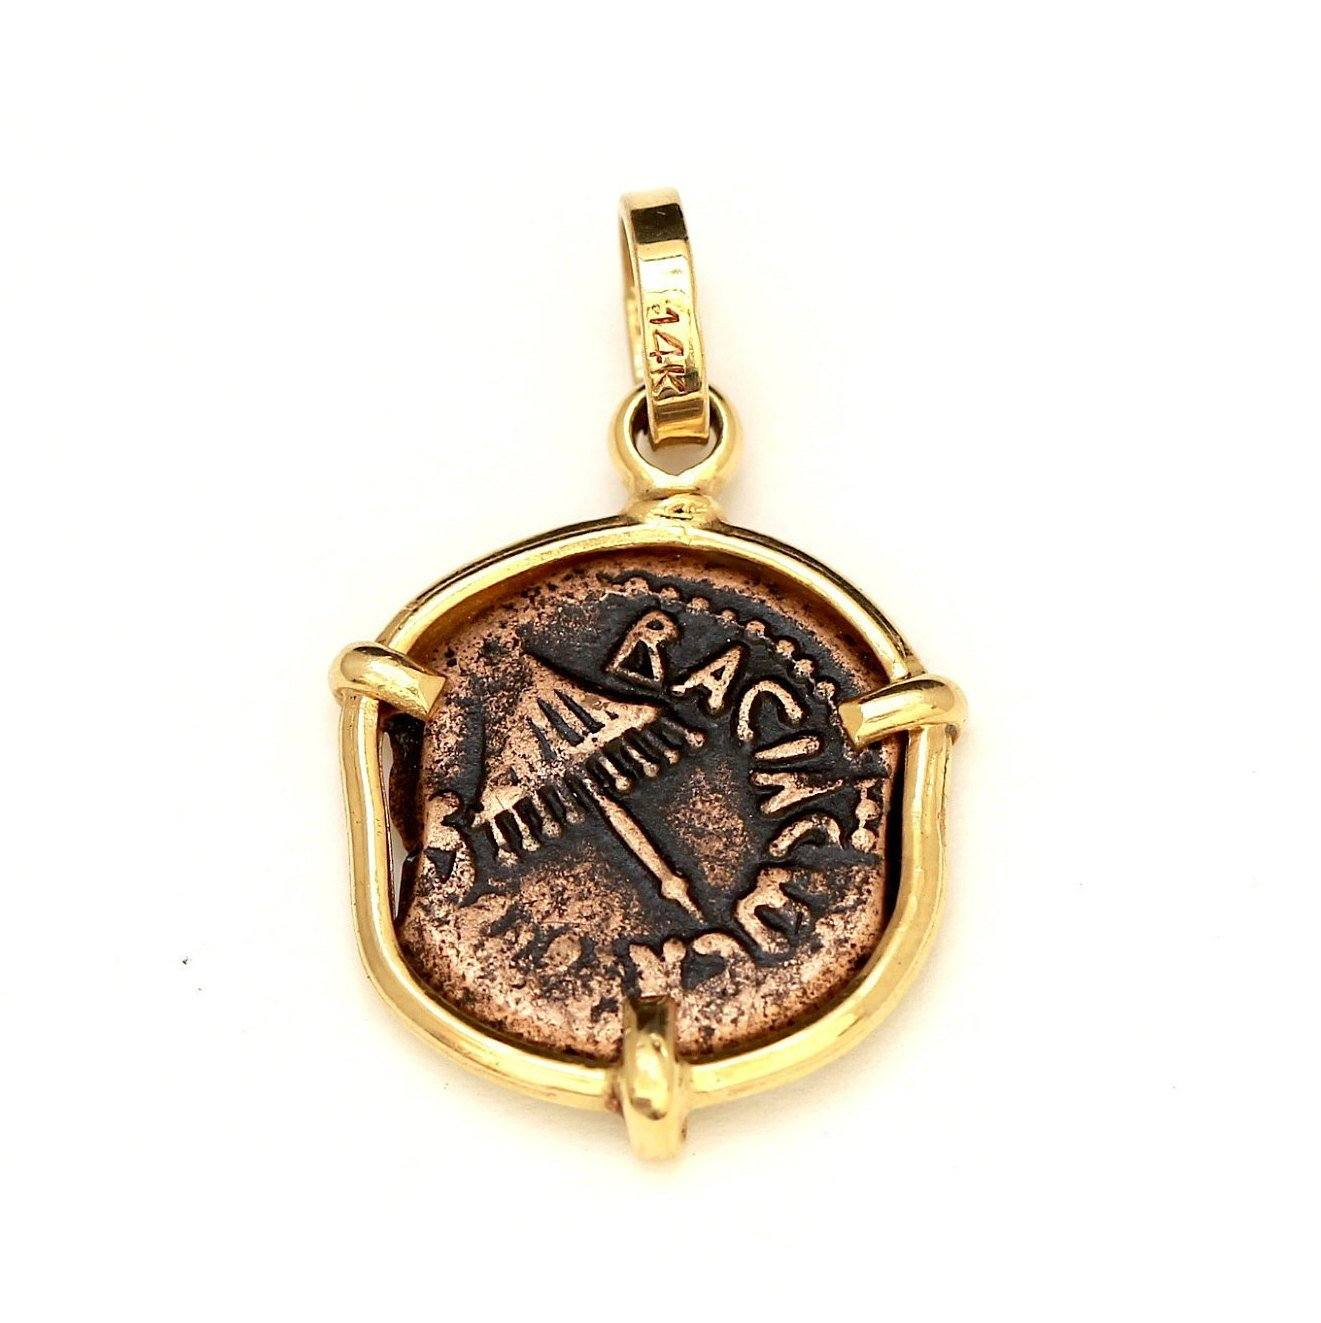 Jewish Agripa Coin, 14K Gold Pendant, Genuine Ancient Coin, with Certificate 6510 - Erez Ancient Coin Jewelry